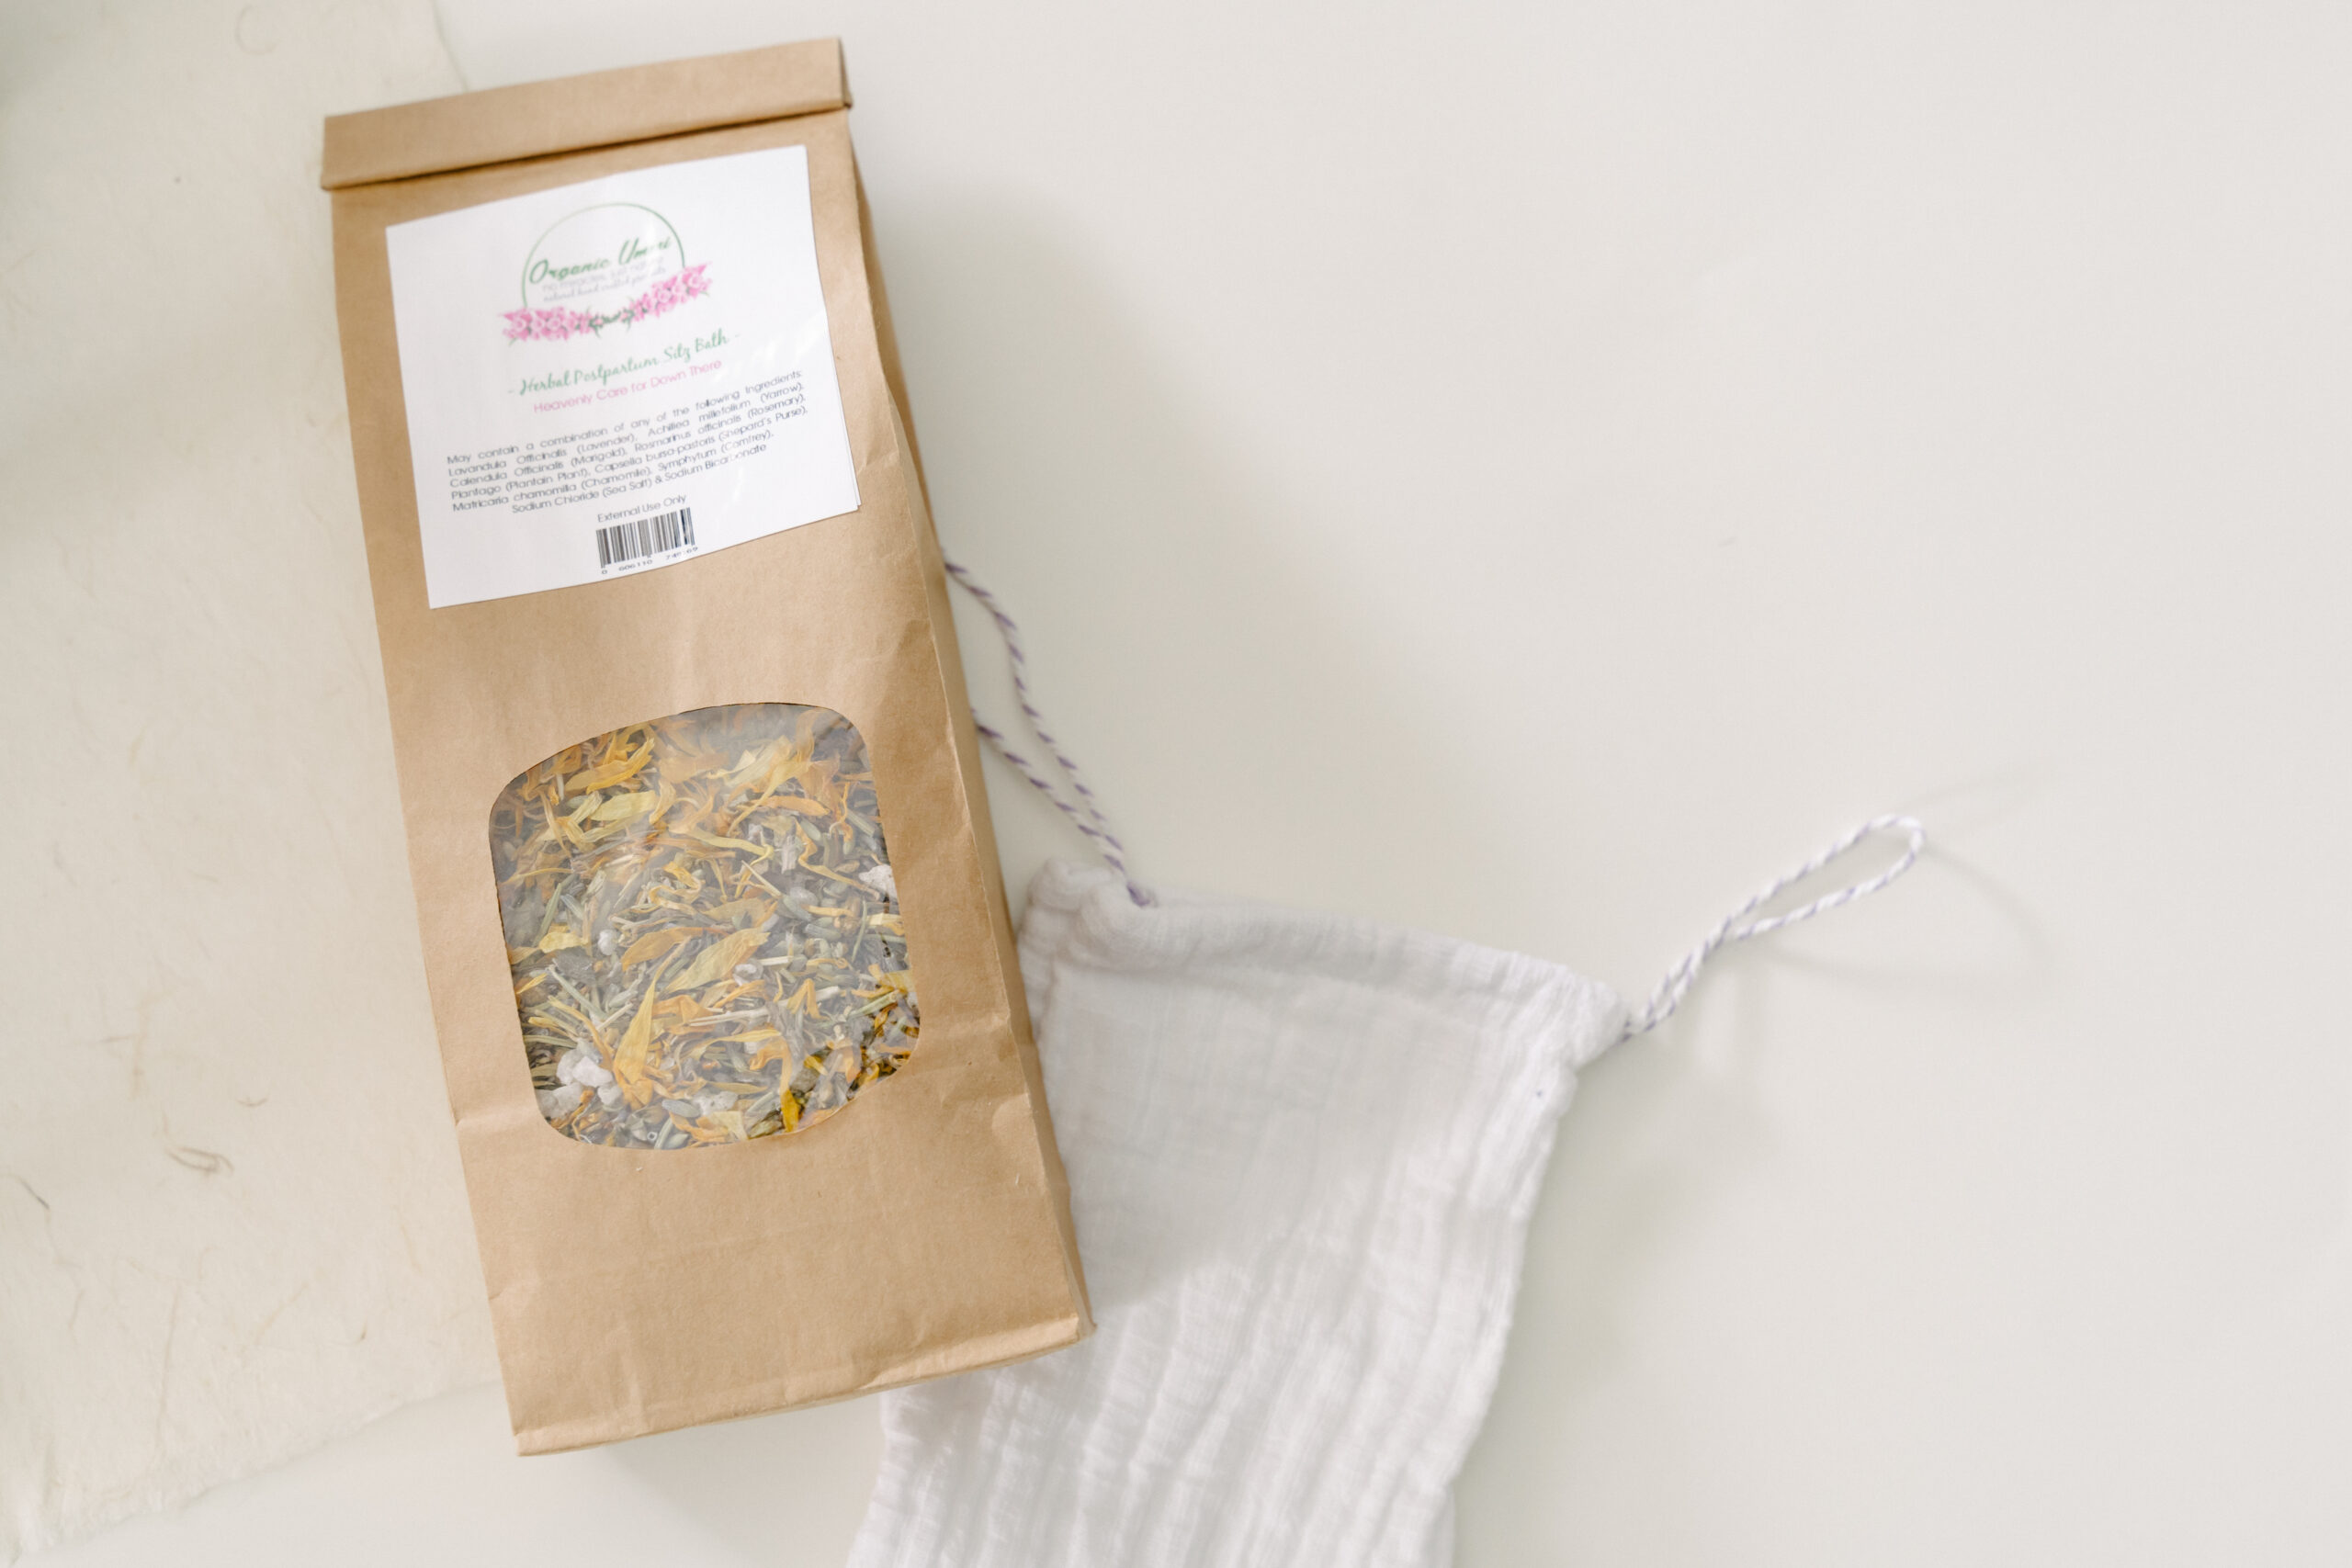 Brown bag containing a mixture of herbs, labelled herbal sitz bath mix lying beside a small white muslin bag